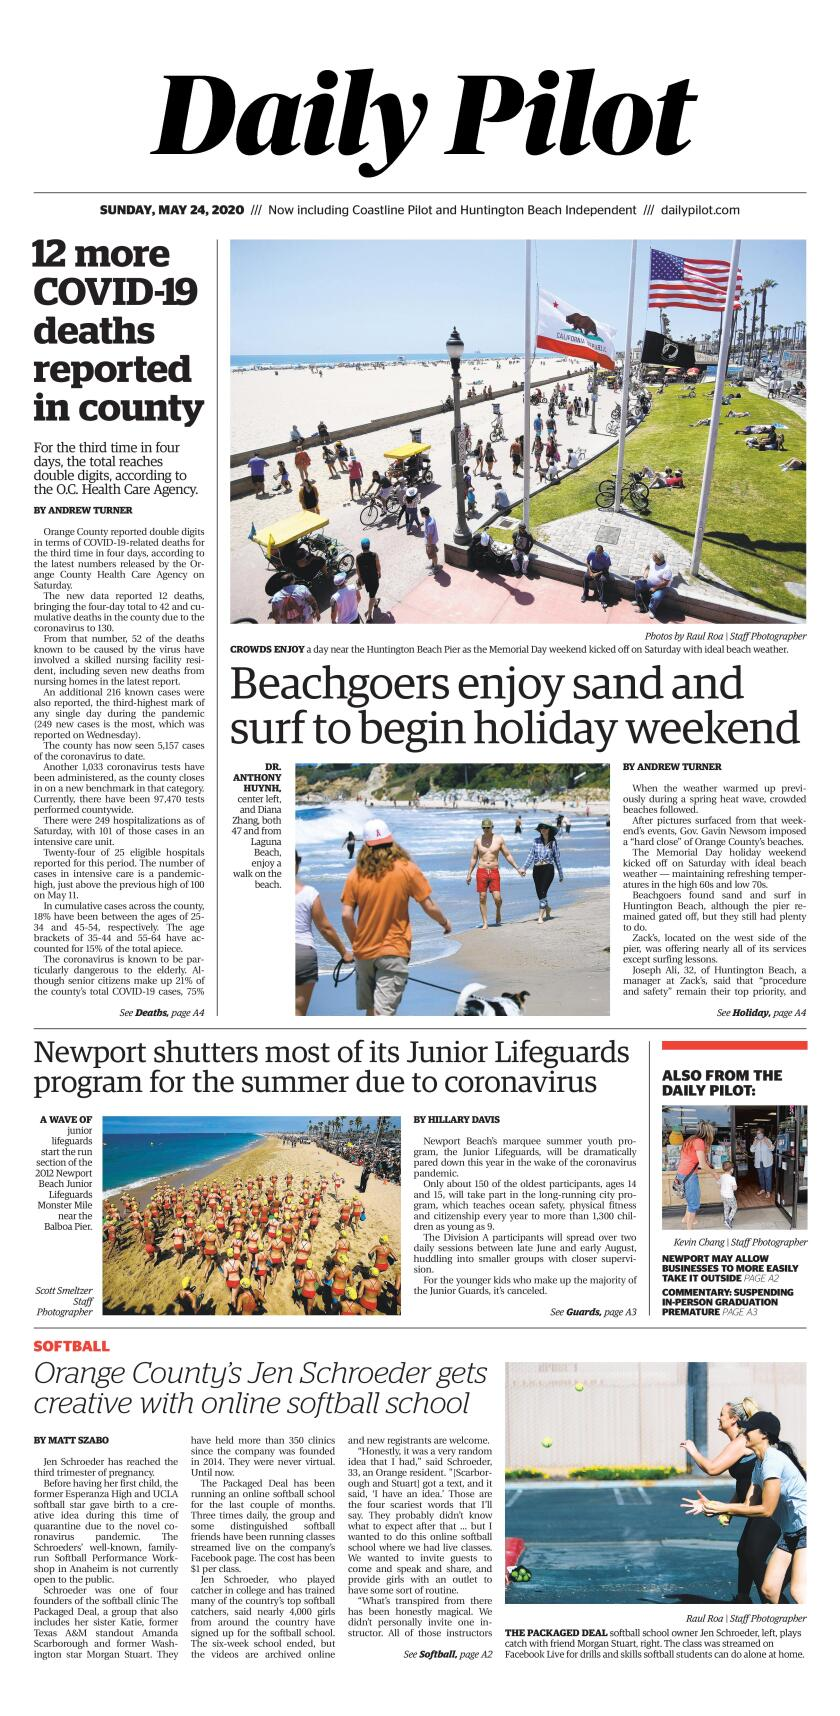 Daily Pilot e-Newspaper: Sunday, May 24, 2020